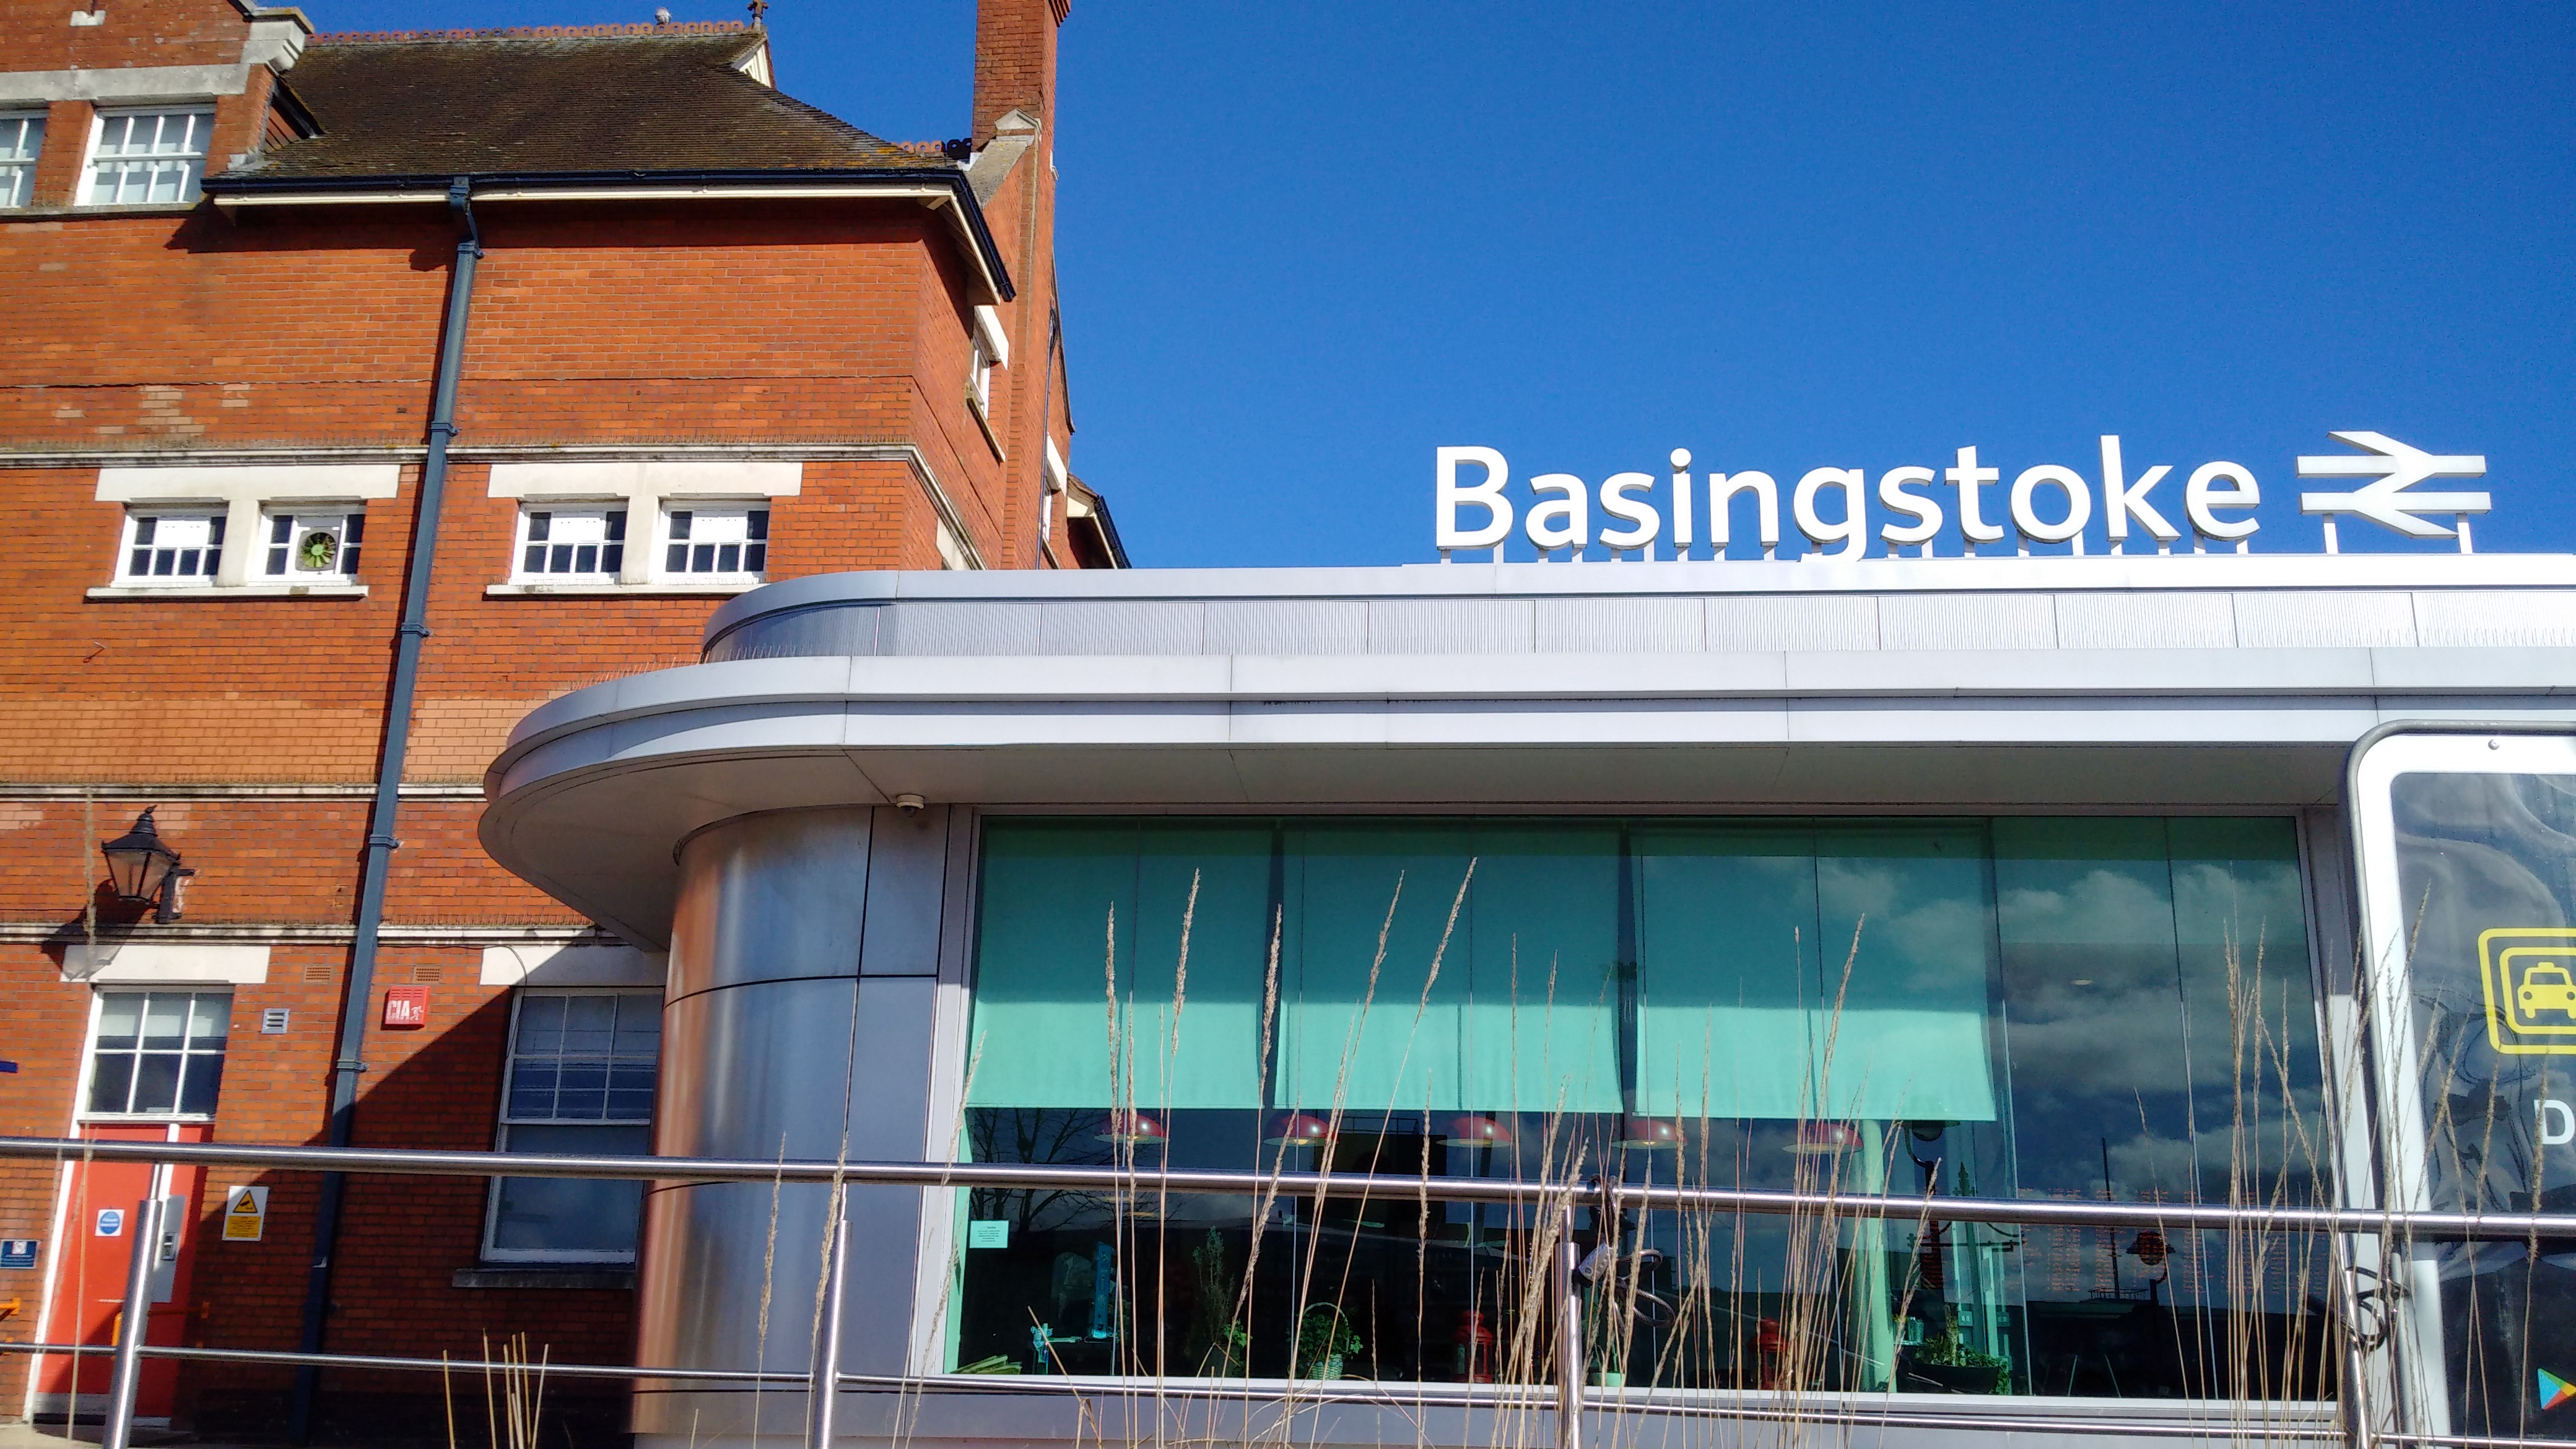 Basingstoke station